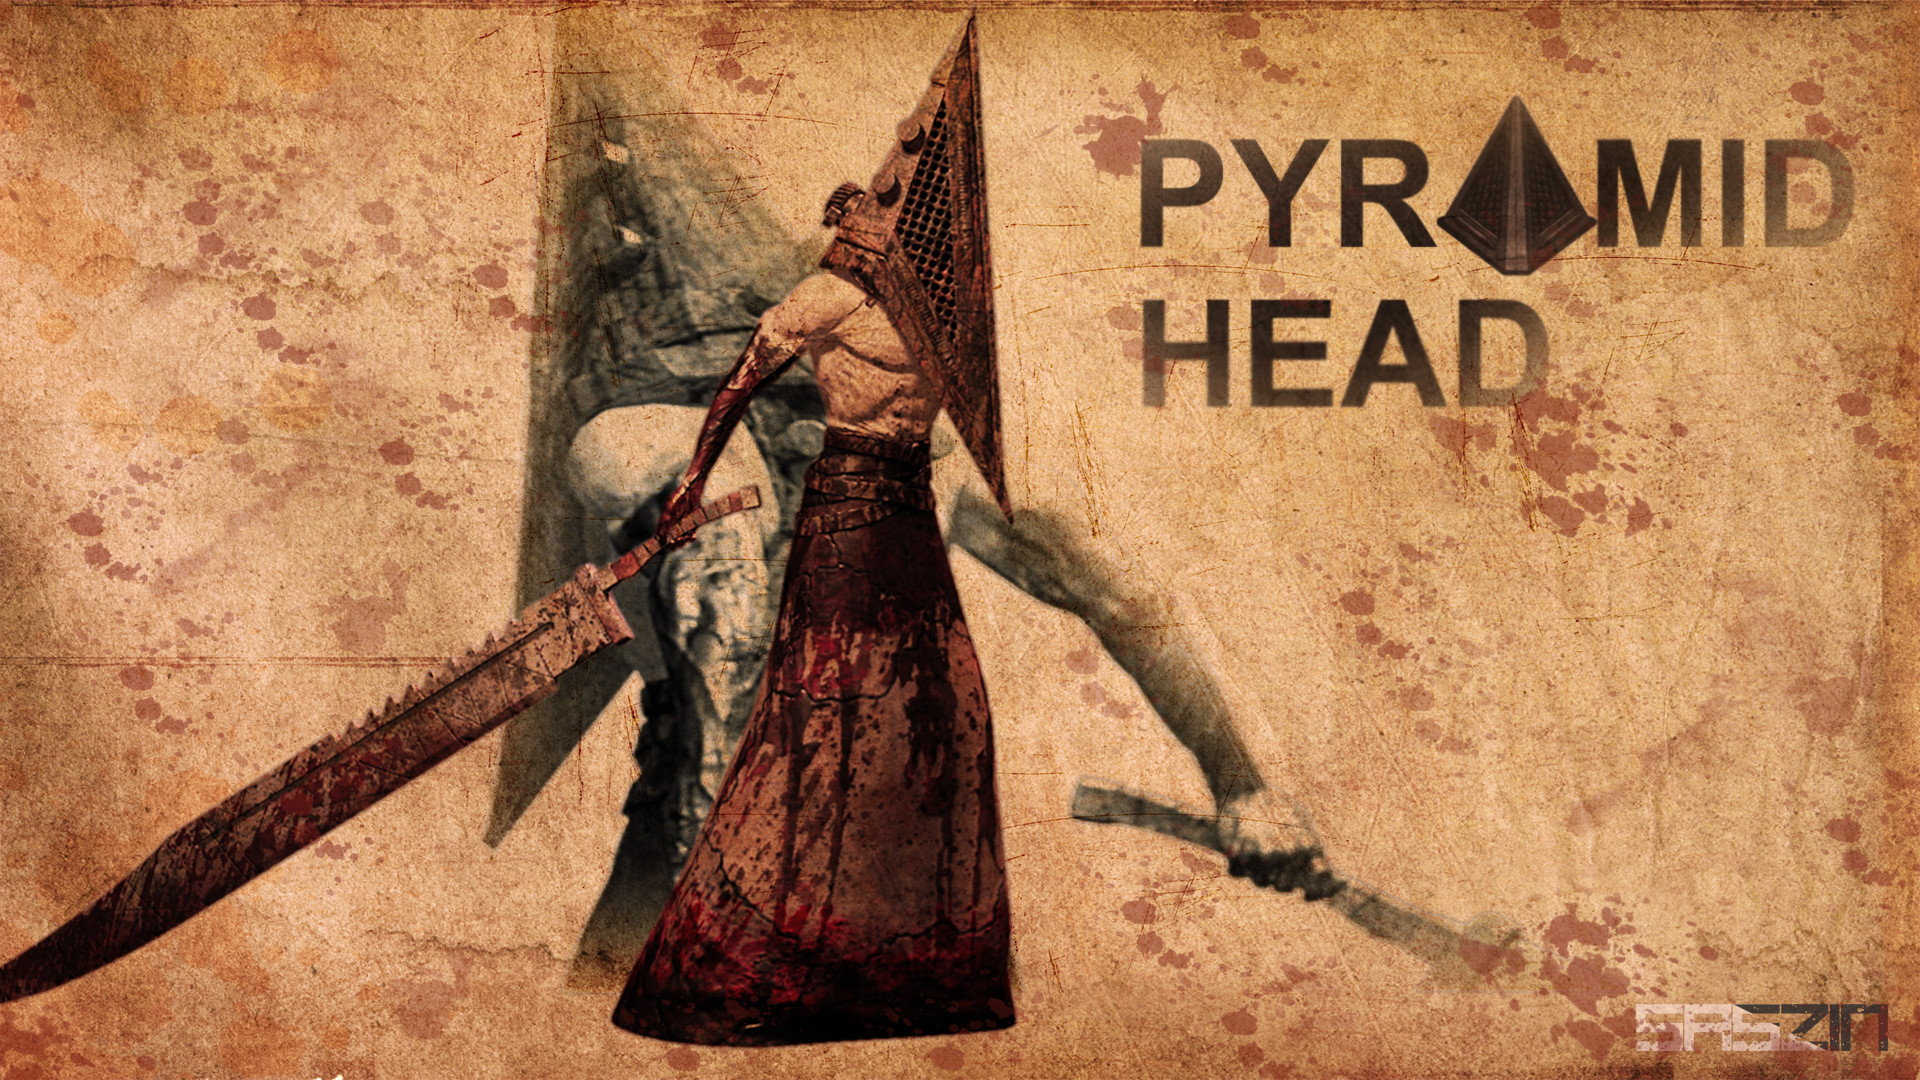 silent hill 2 pyramid head wallpaper